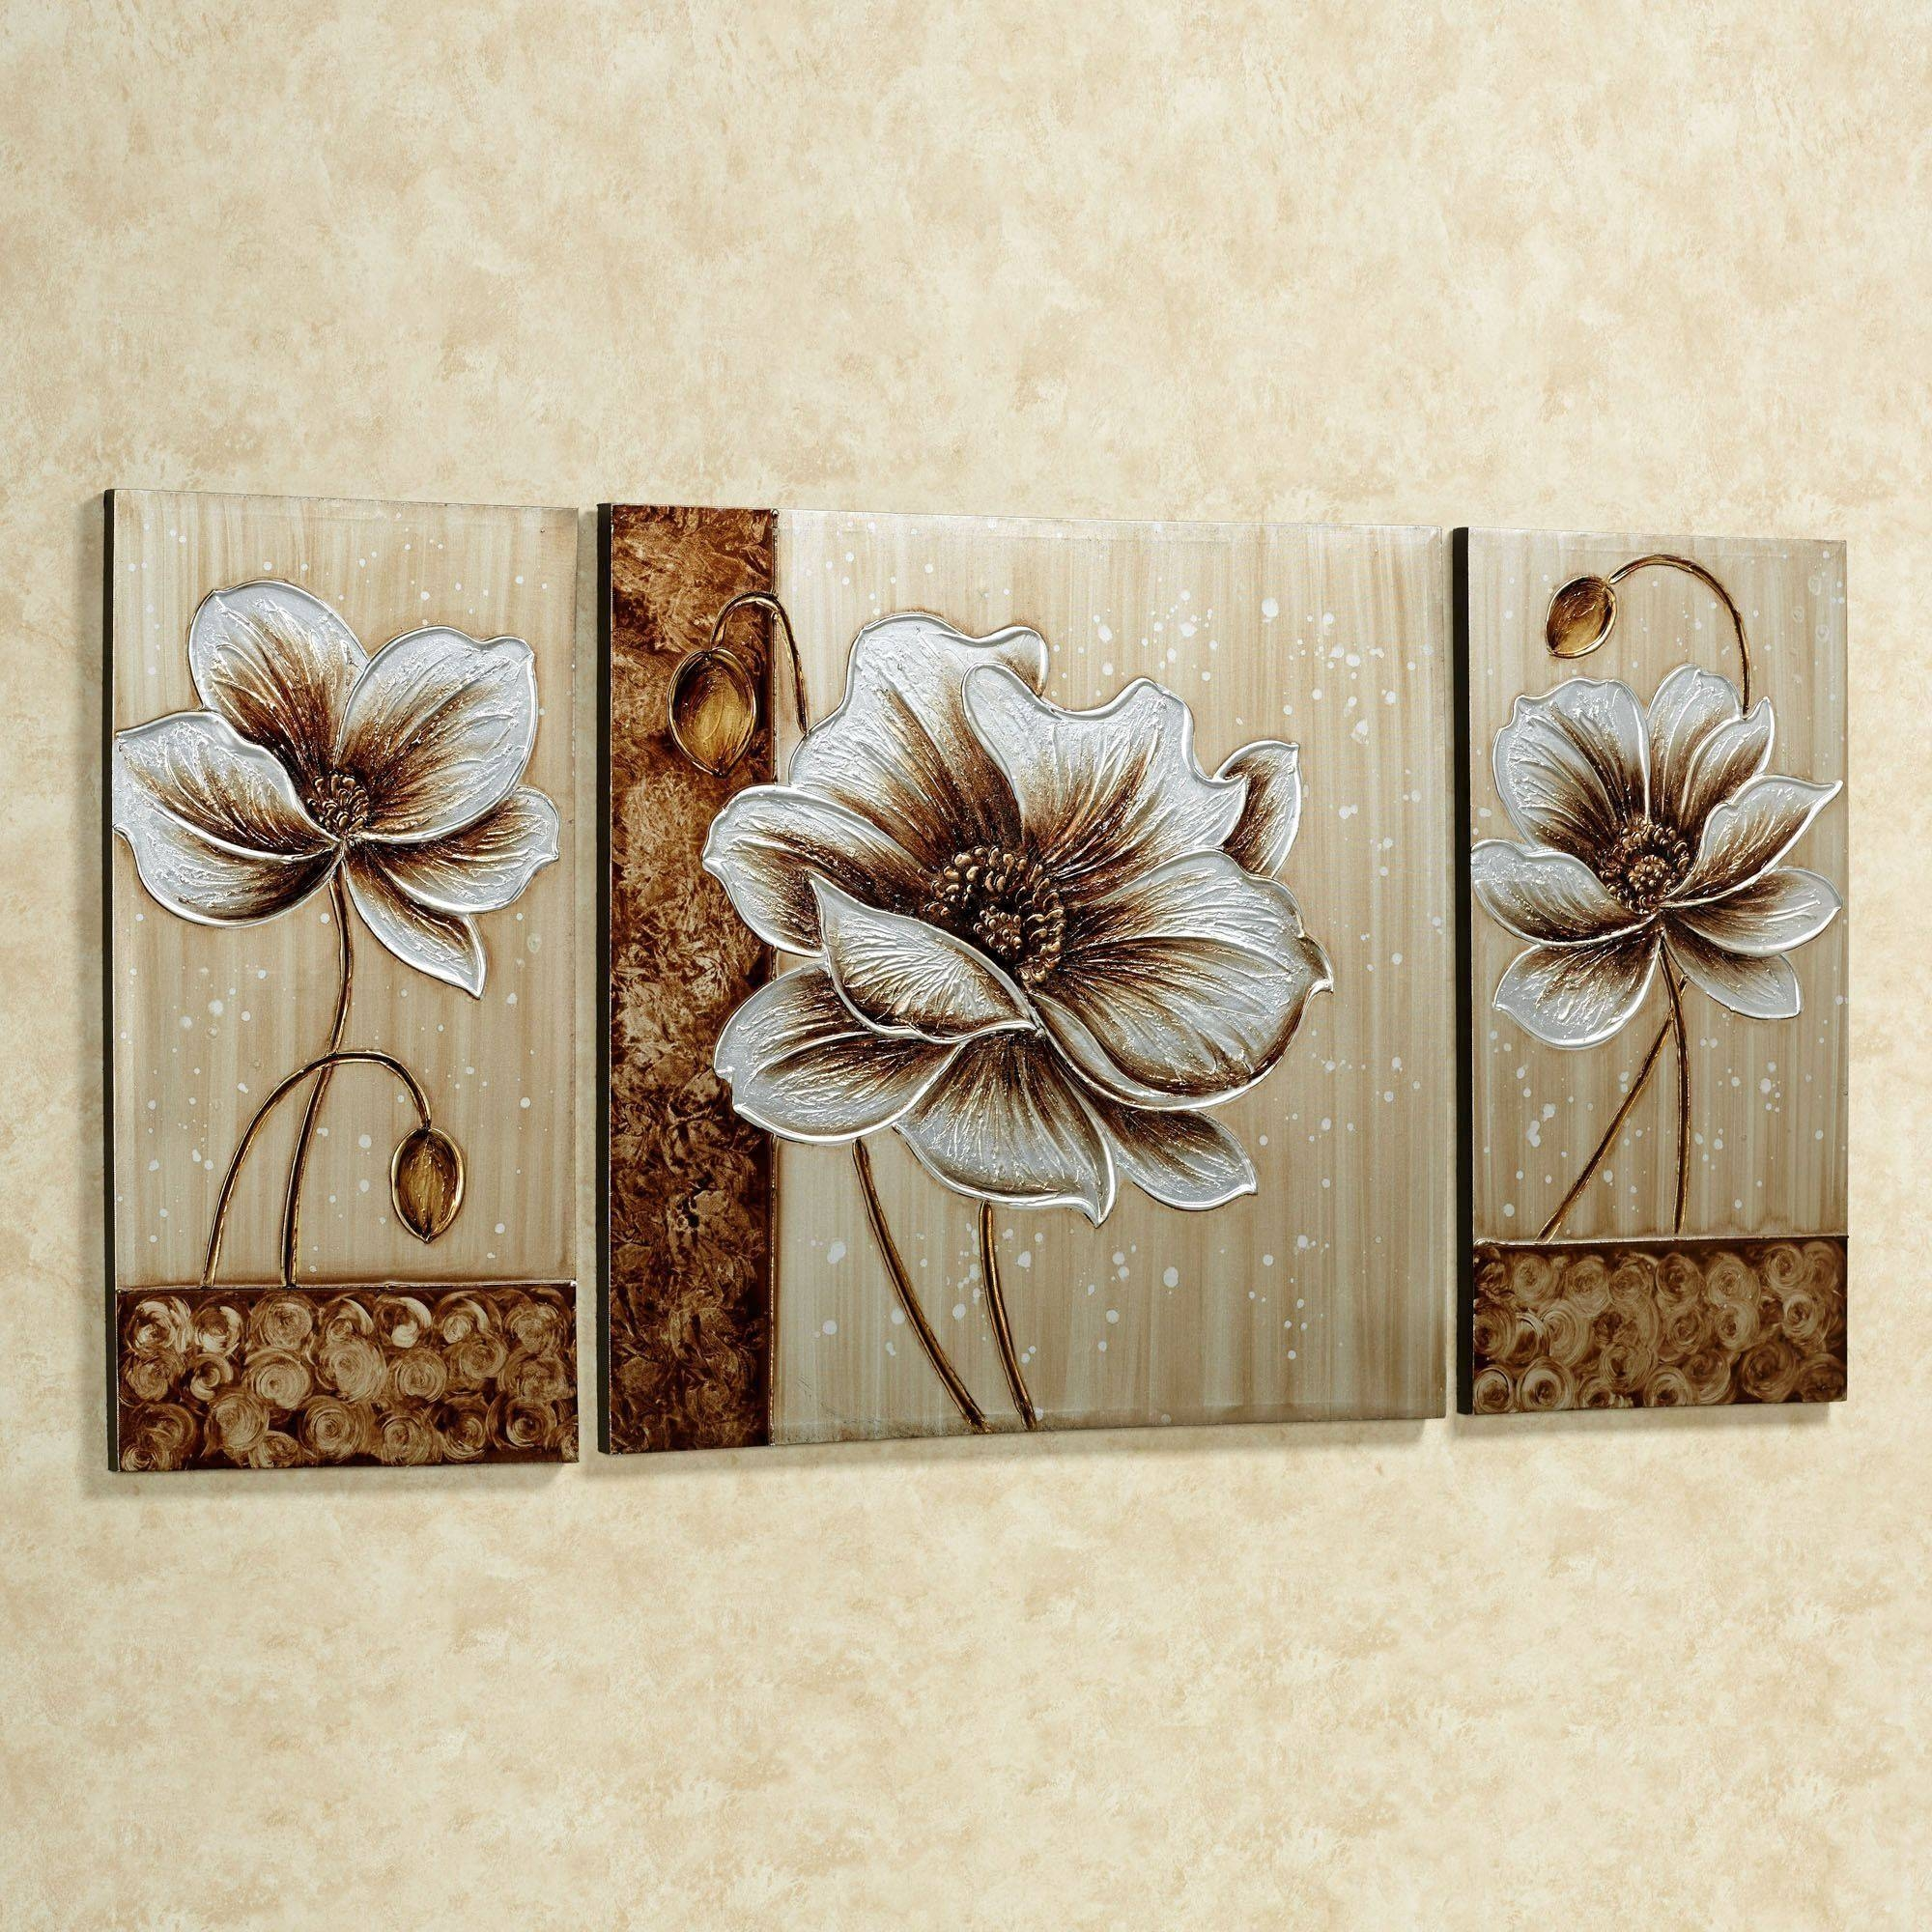 Subtle Elegance Floral Canvas Wall Art Set Pertaining To Most Current Three Piece Wall Art Sets (View 11 of 15)